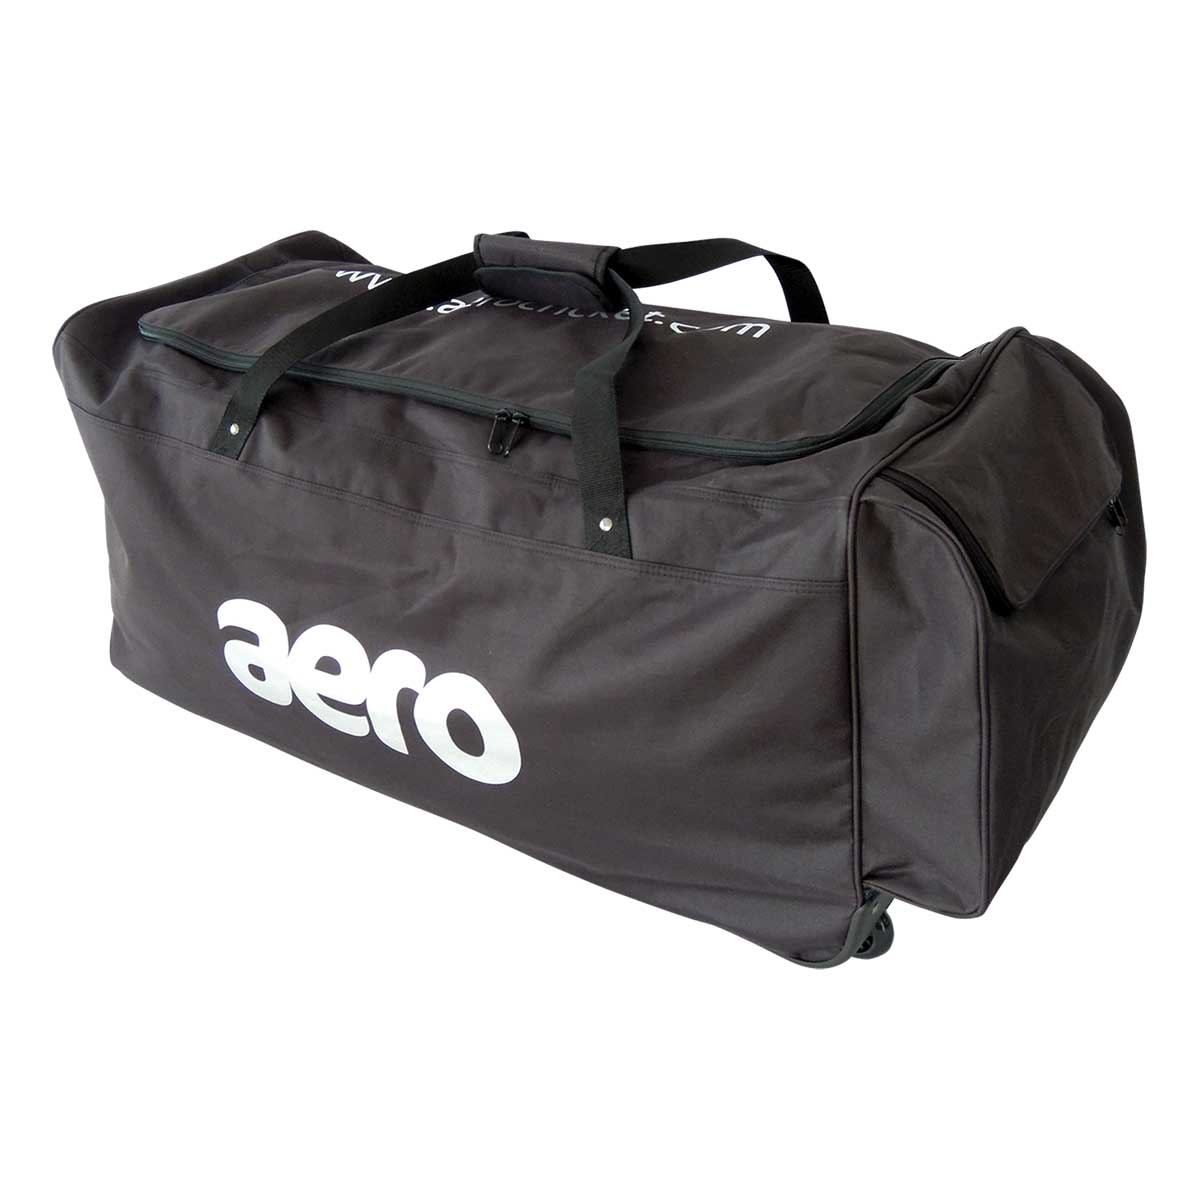 1707-Aero-Bag-Team-Kit 1718